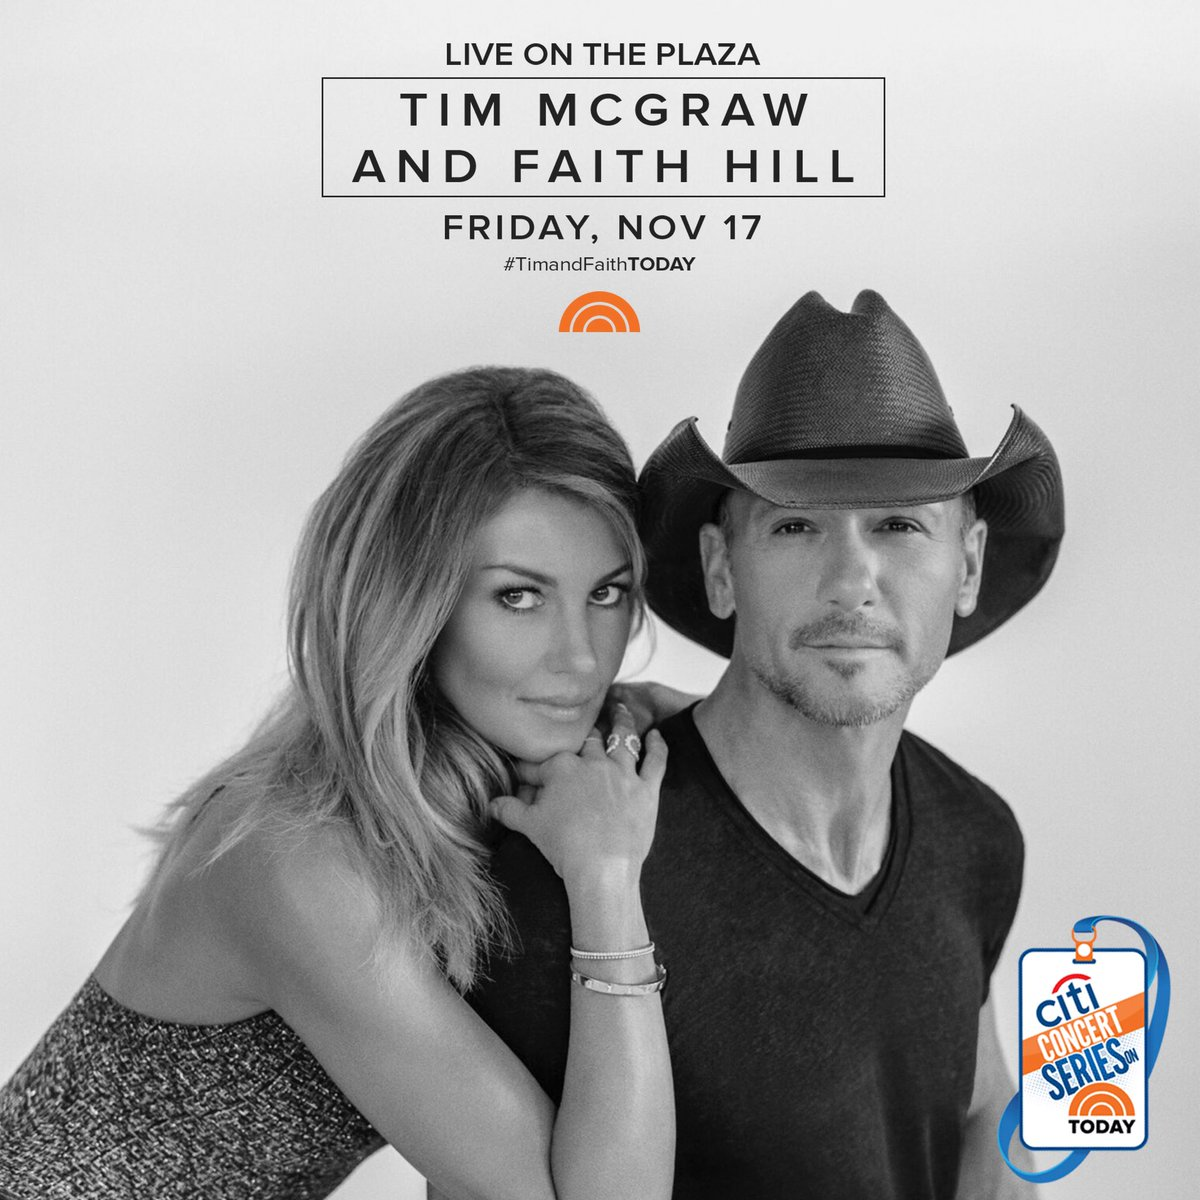 See you next week, NYC! #TimandFaithTODAY https://t.co/RtbQ10Oe5o